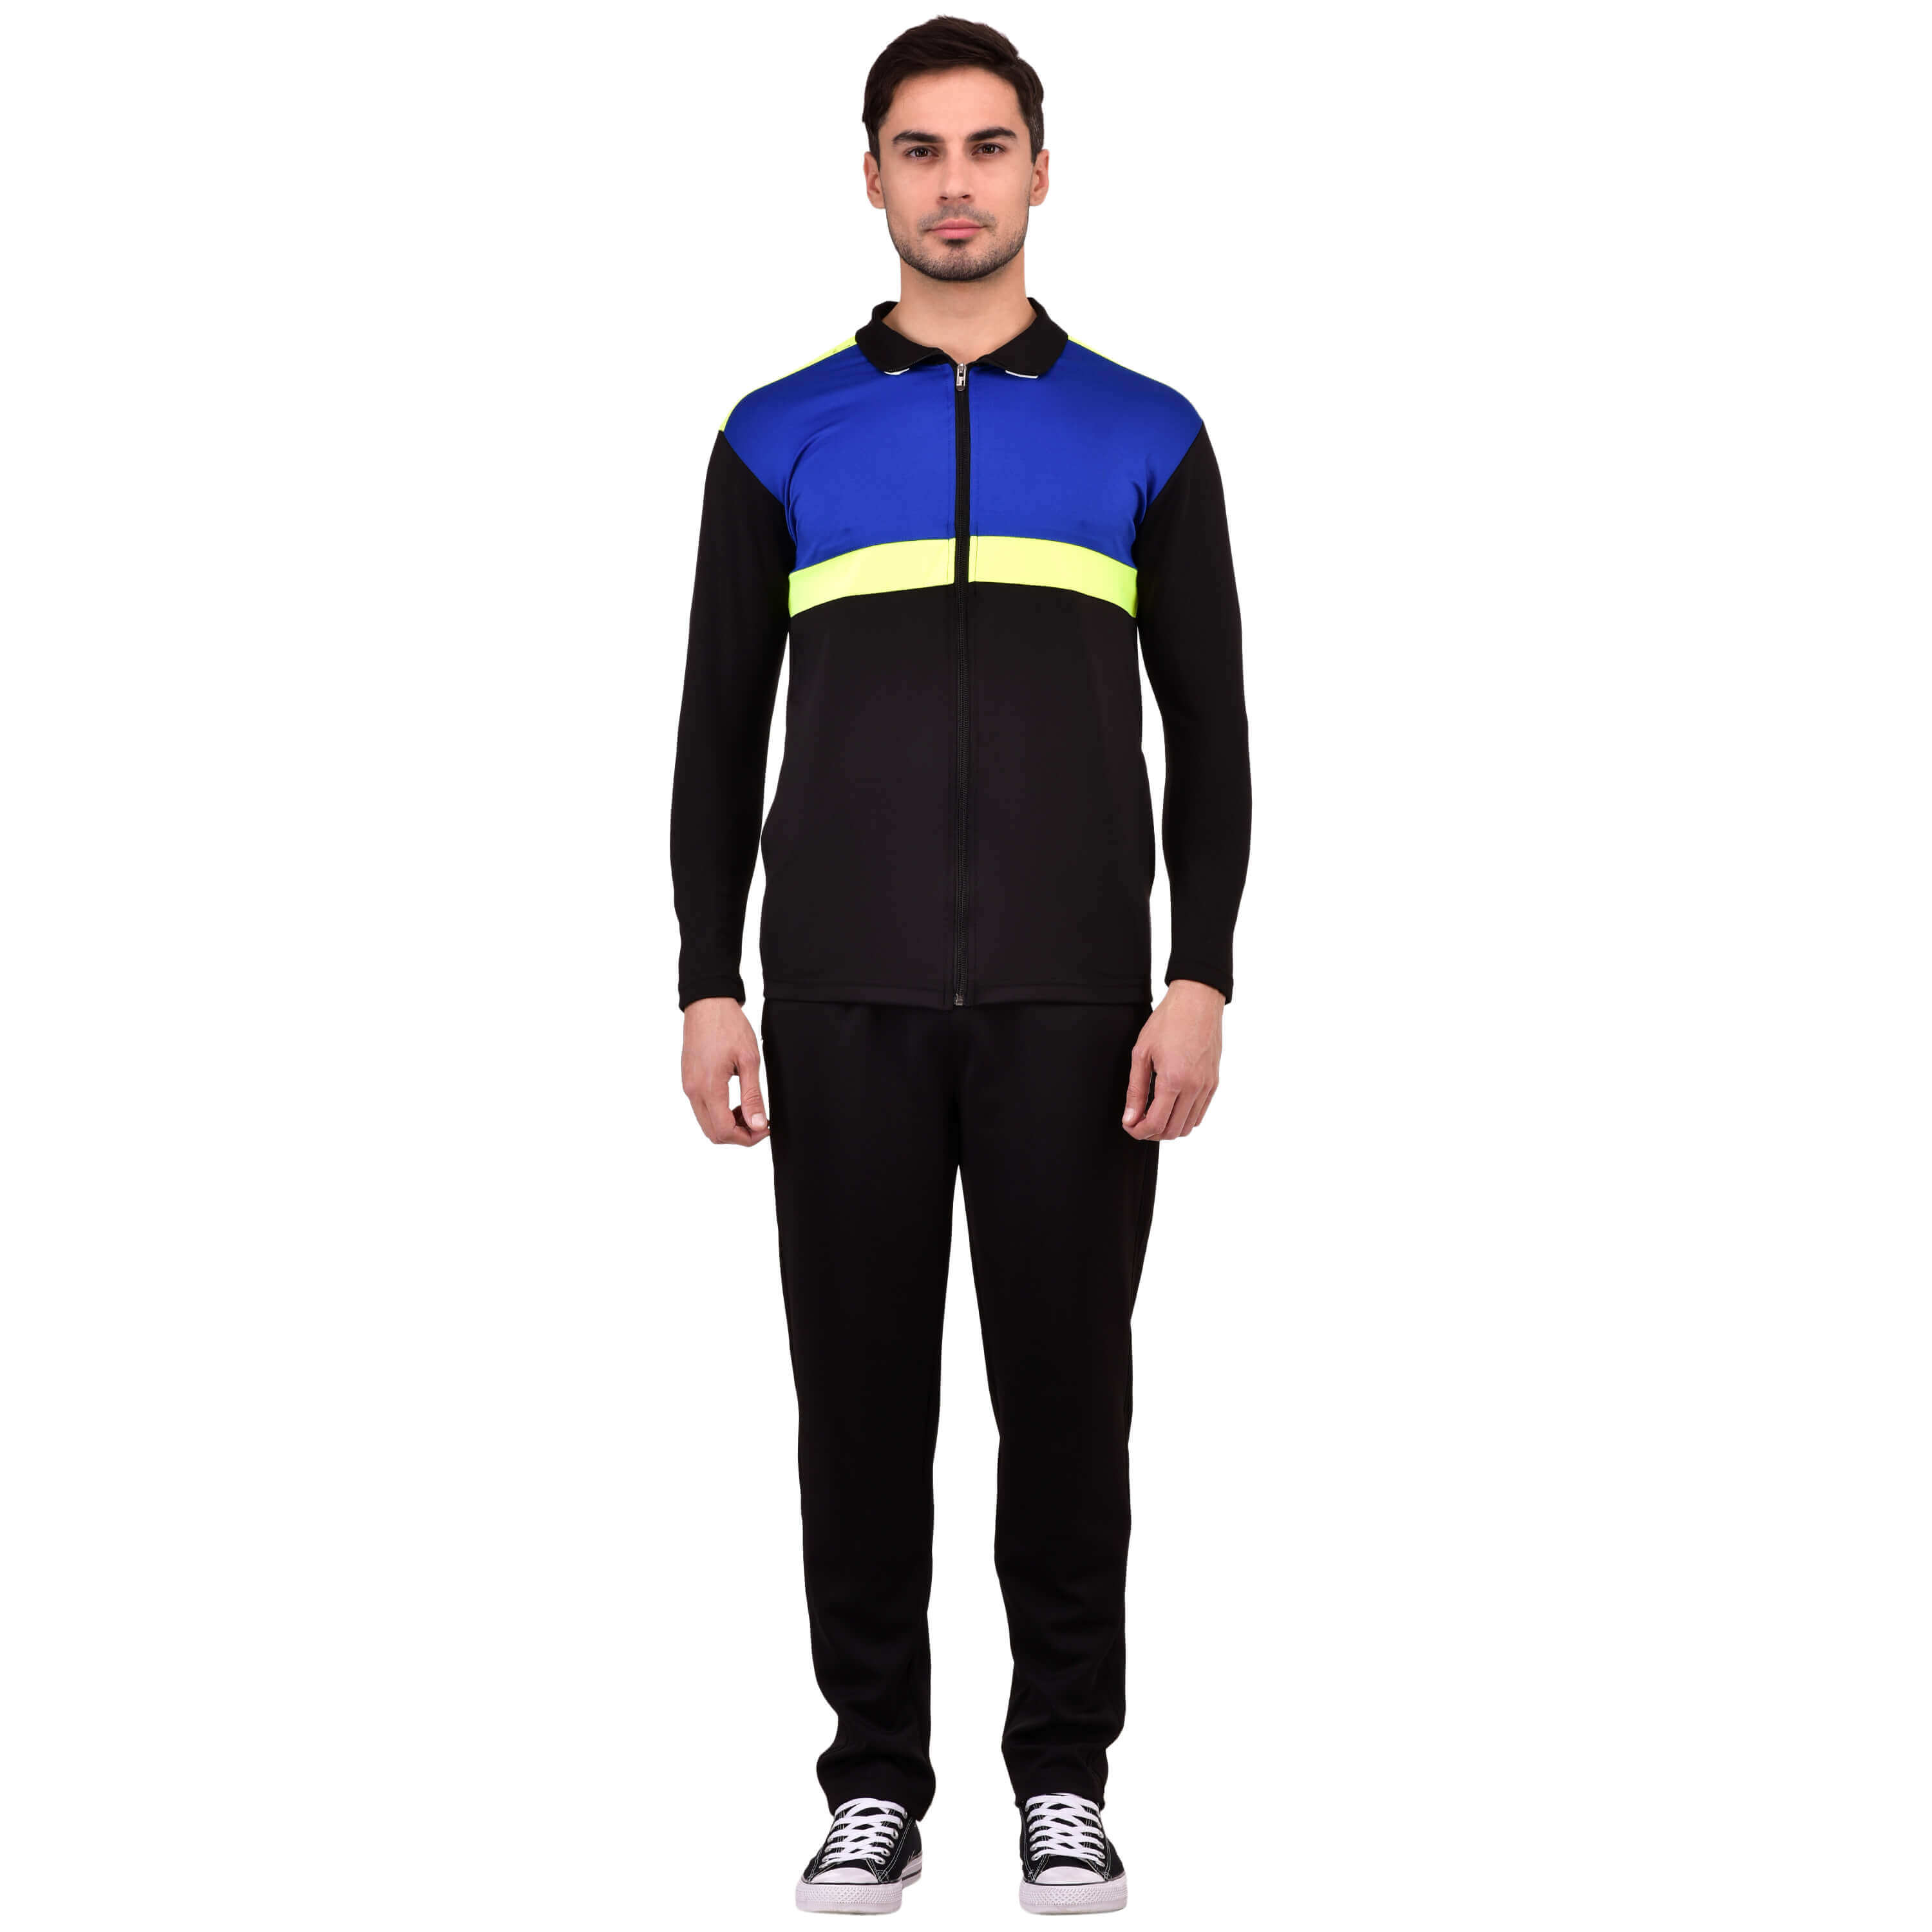 Mens Black Tracksuit Manufacturers in Solapur